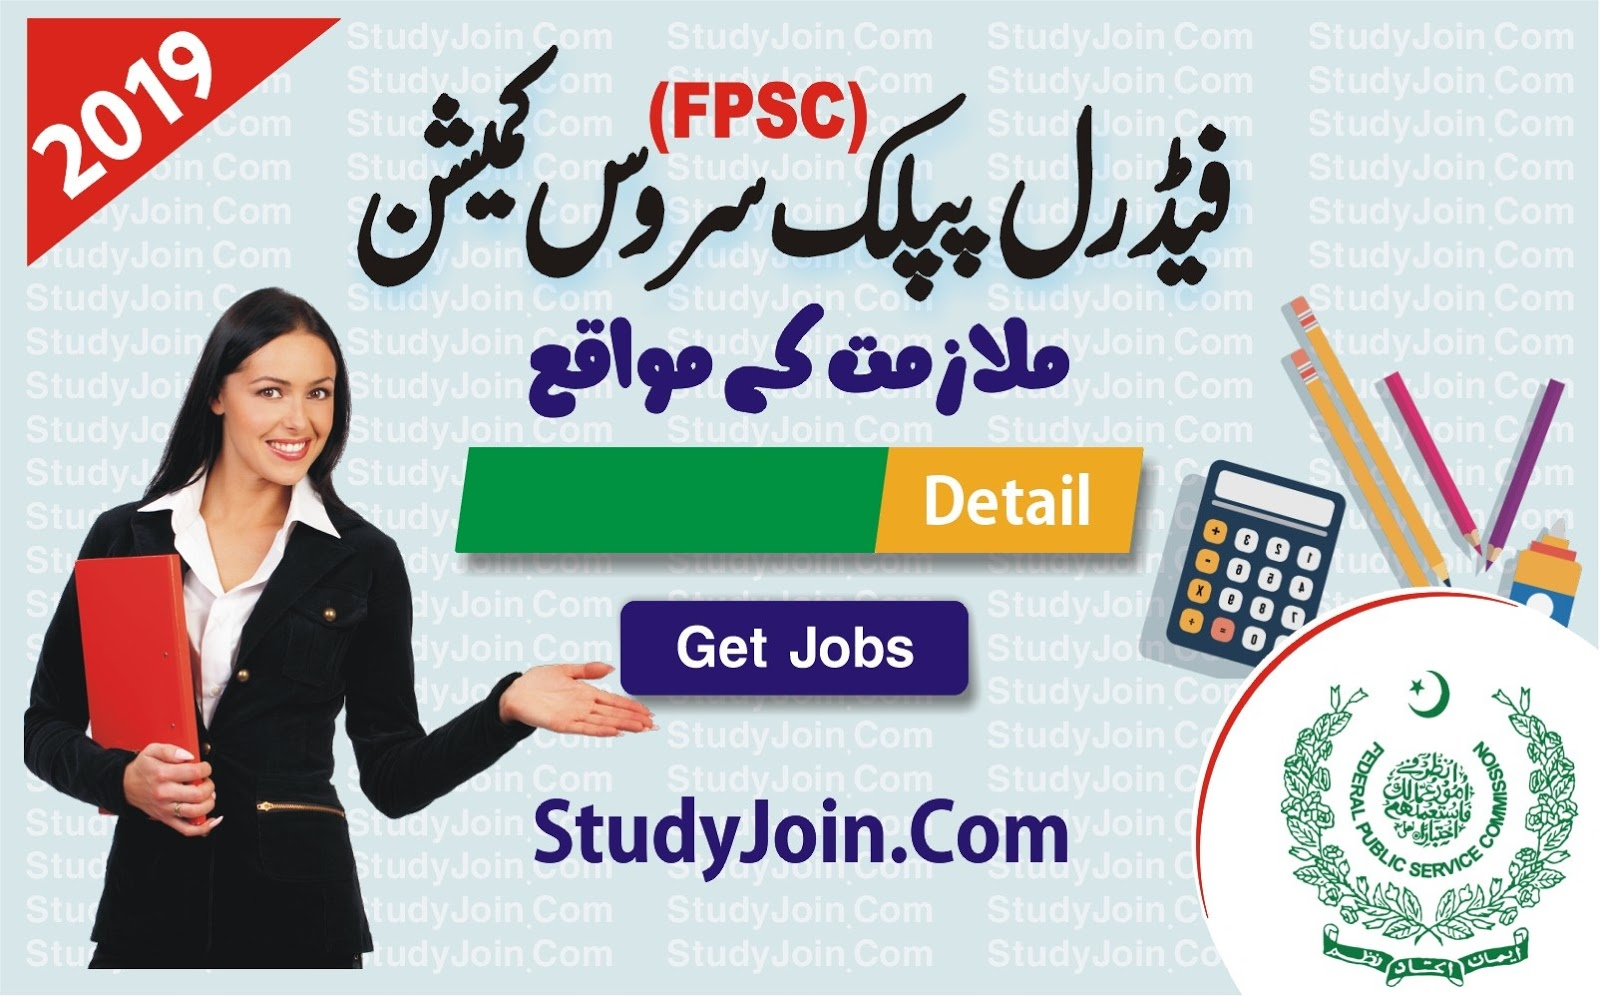 FPSC jobs, fpsc jobs 2019, fpsc jobs 2019 advertisement, federal public service commission (fpsc) jobs 2019 latest, fpsc jobs intelligence bureau, fpsc results, fpsc jobs qualification, fpsc slip, ppsc, spsc, fpsc online apply, fpsc admission certificate, fpsc syllabus, spsc jobs, fpsc senior auditor, fpsc jobs online apply, fpsc challan form filled sample, jobsalert, paperpk, vulearning, jobs alert 2019, jobsalert pk police, banks jobs in pakistan, pakistanjobsbank, jobs pk, govt jobs in pakistan for teachers, ilm ki duniya jobs, jobsworld, jobs in pakistan 2019, jobs in pakistan newspapers, job in pk, job portal online, govt job website, olx Jobs, rozee pk Jobs, cv maker.